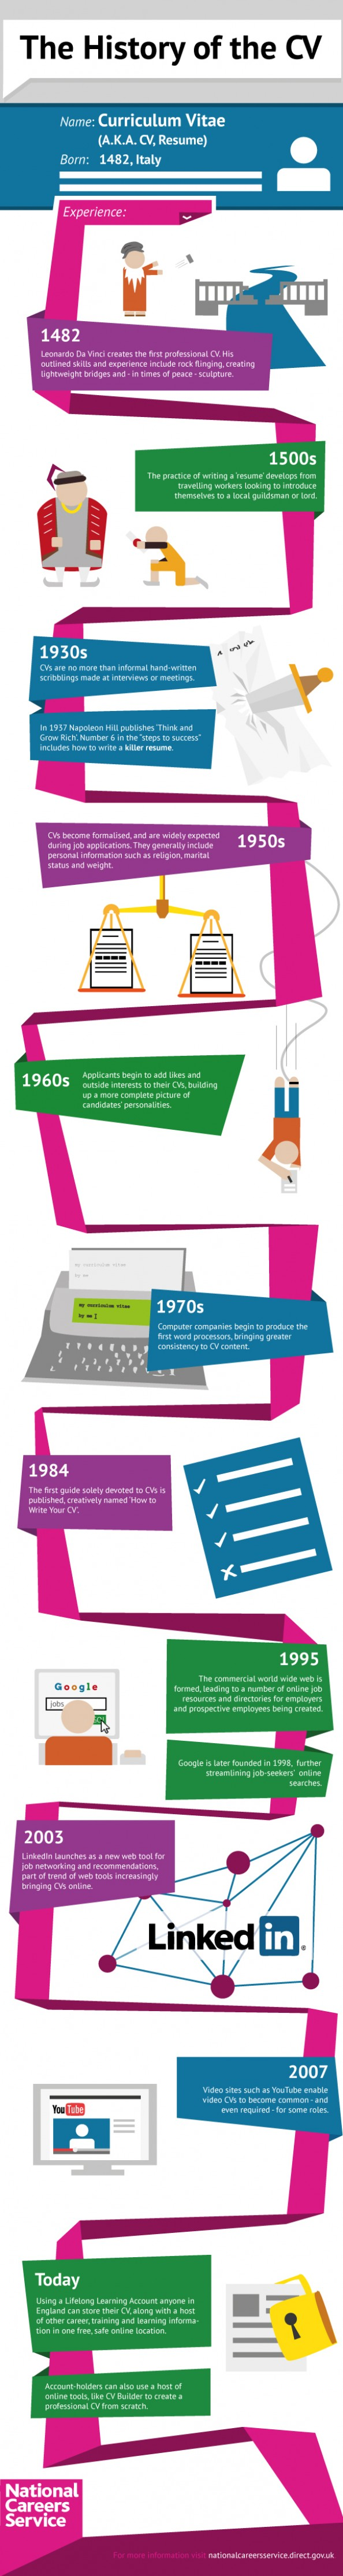 The History of the CV [INFOGRAPHIC] History infographic